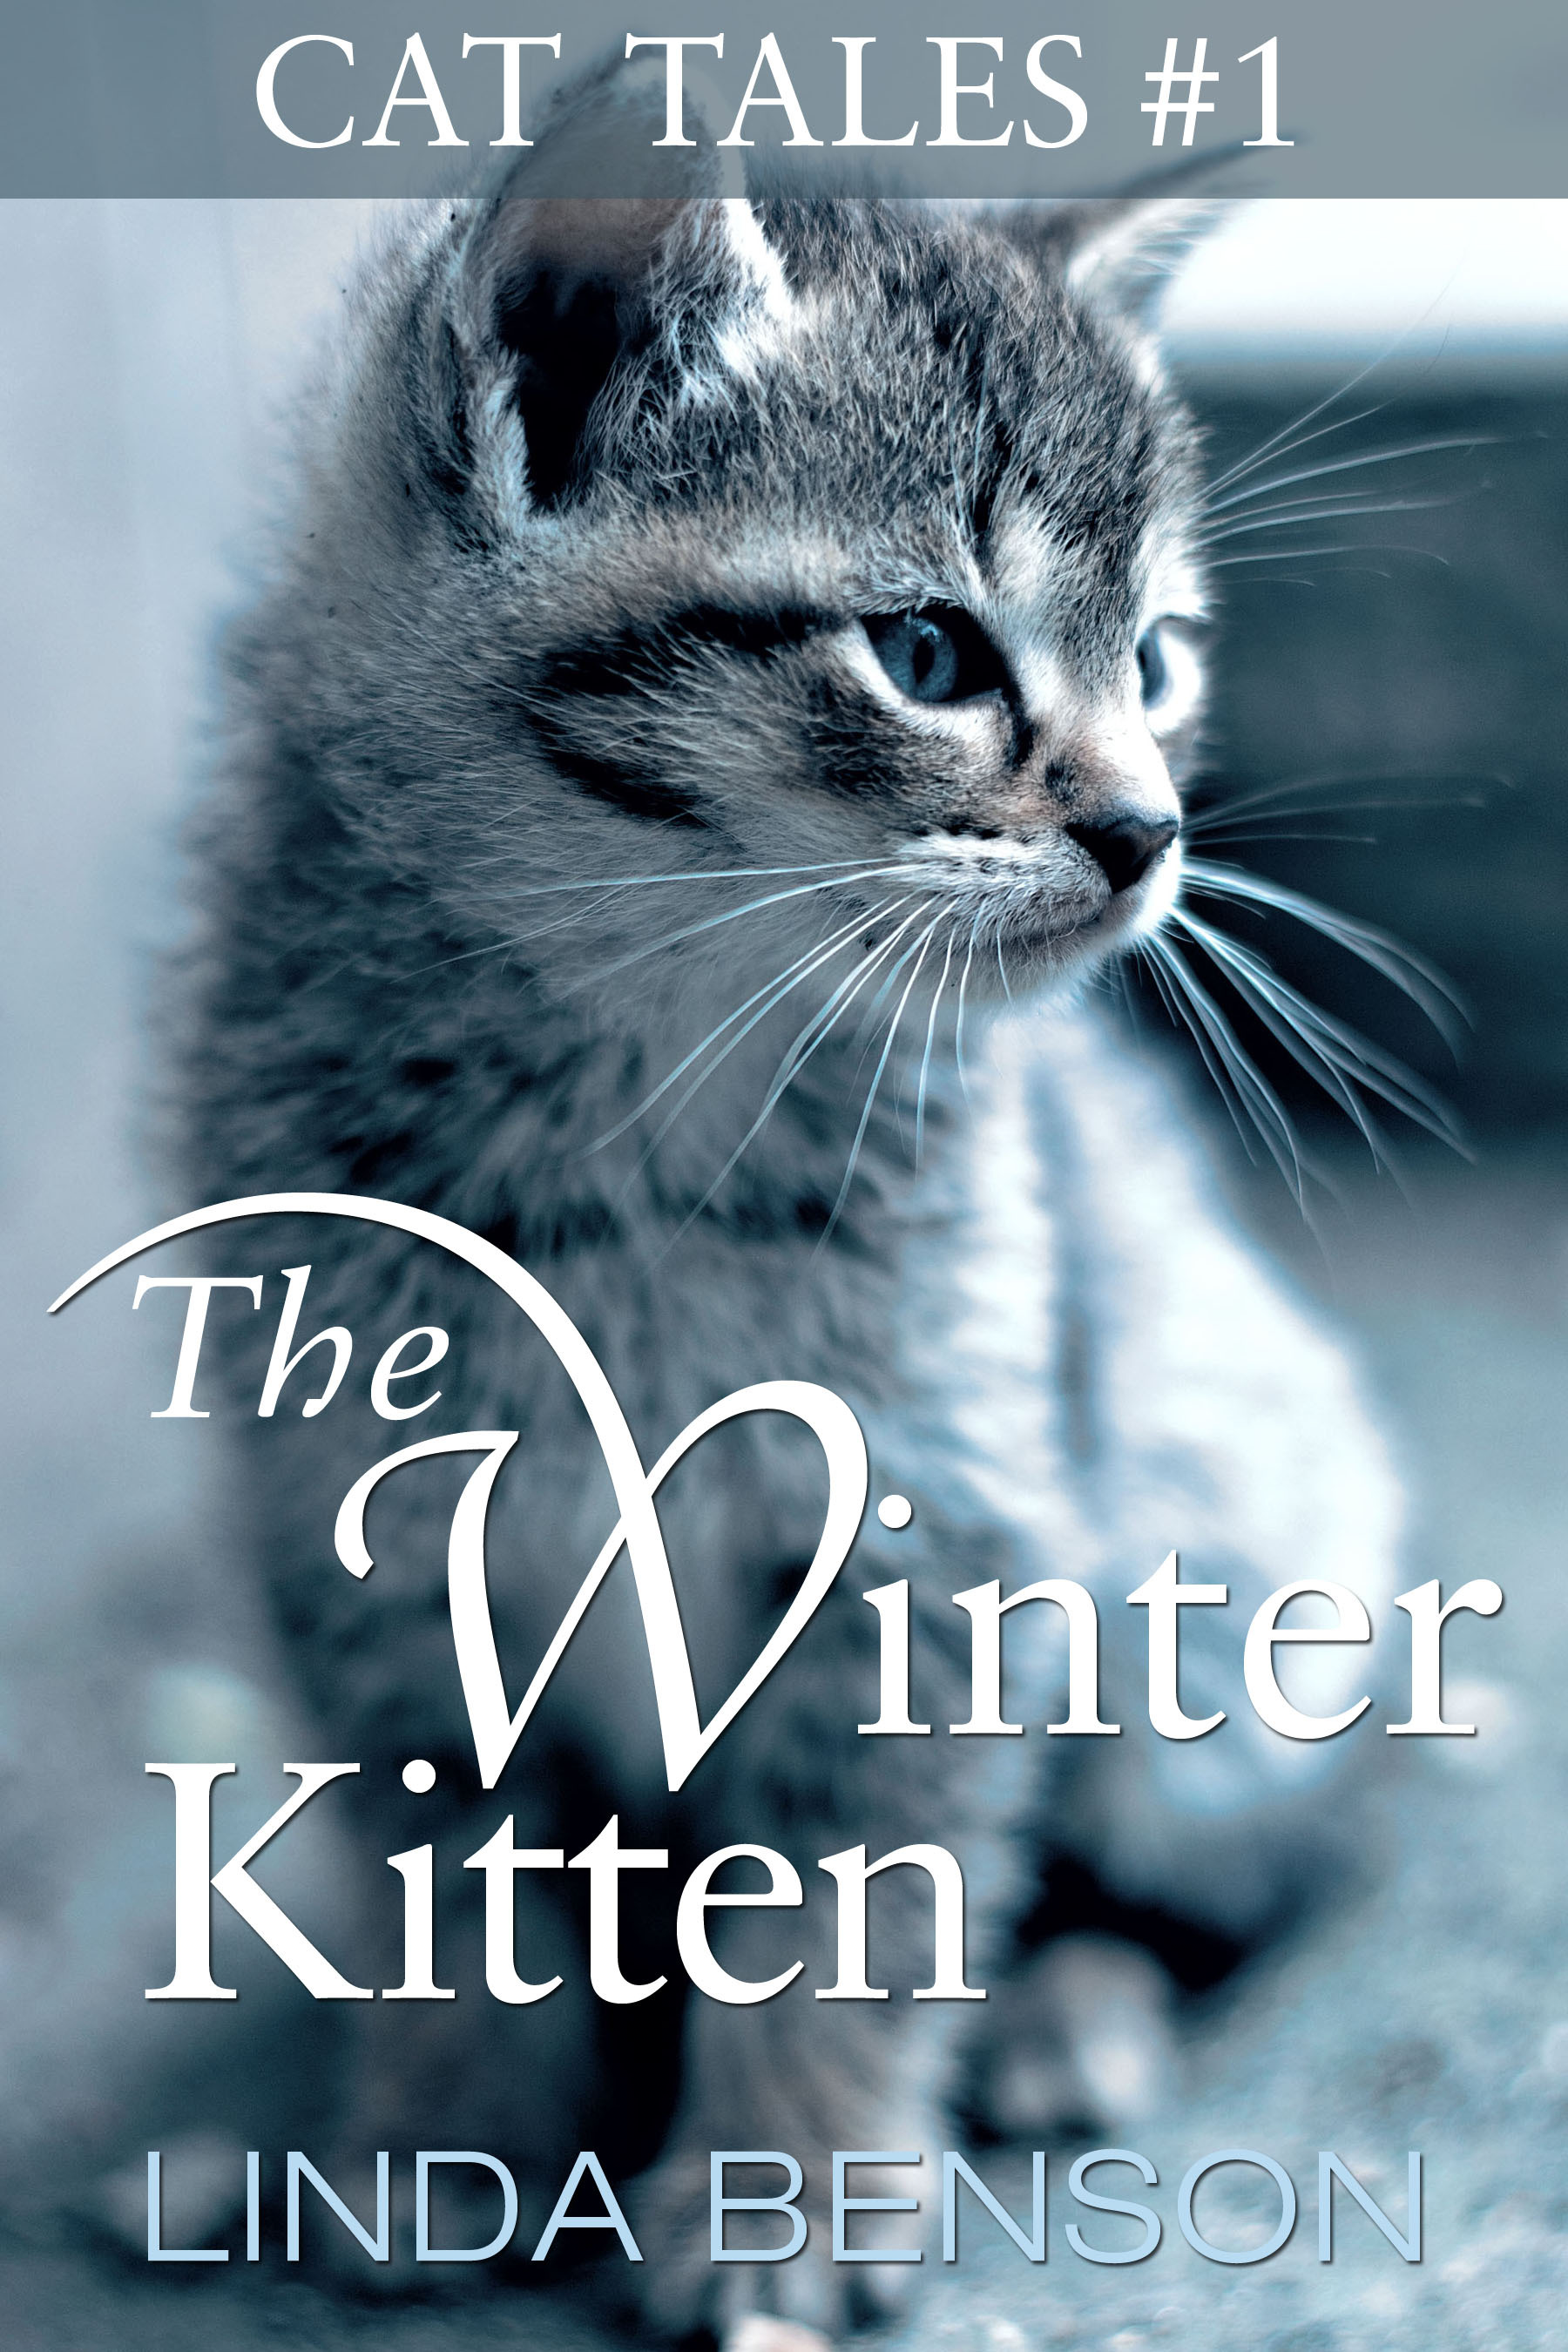 The Winter Kitten